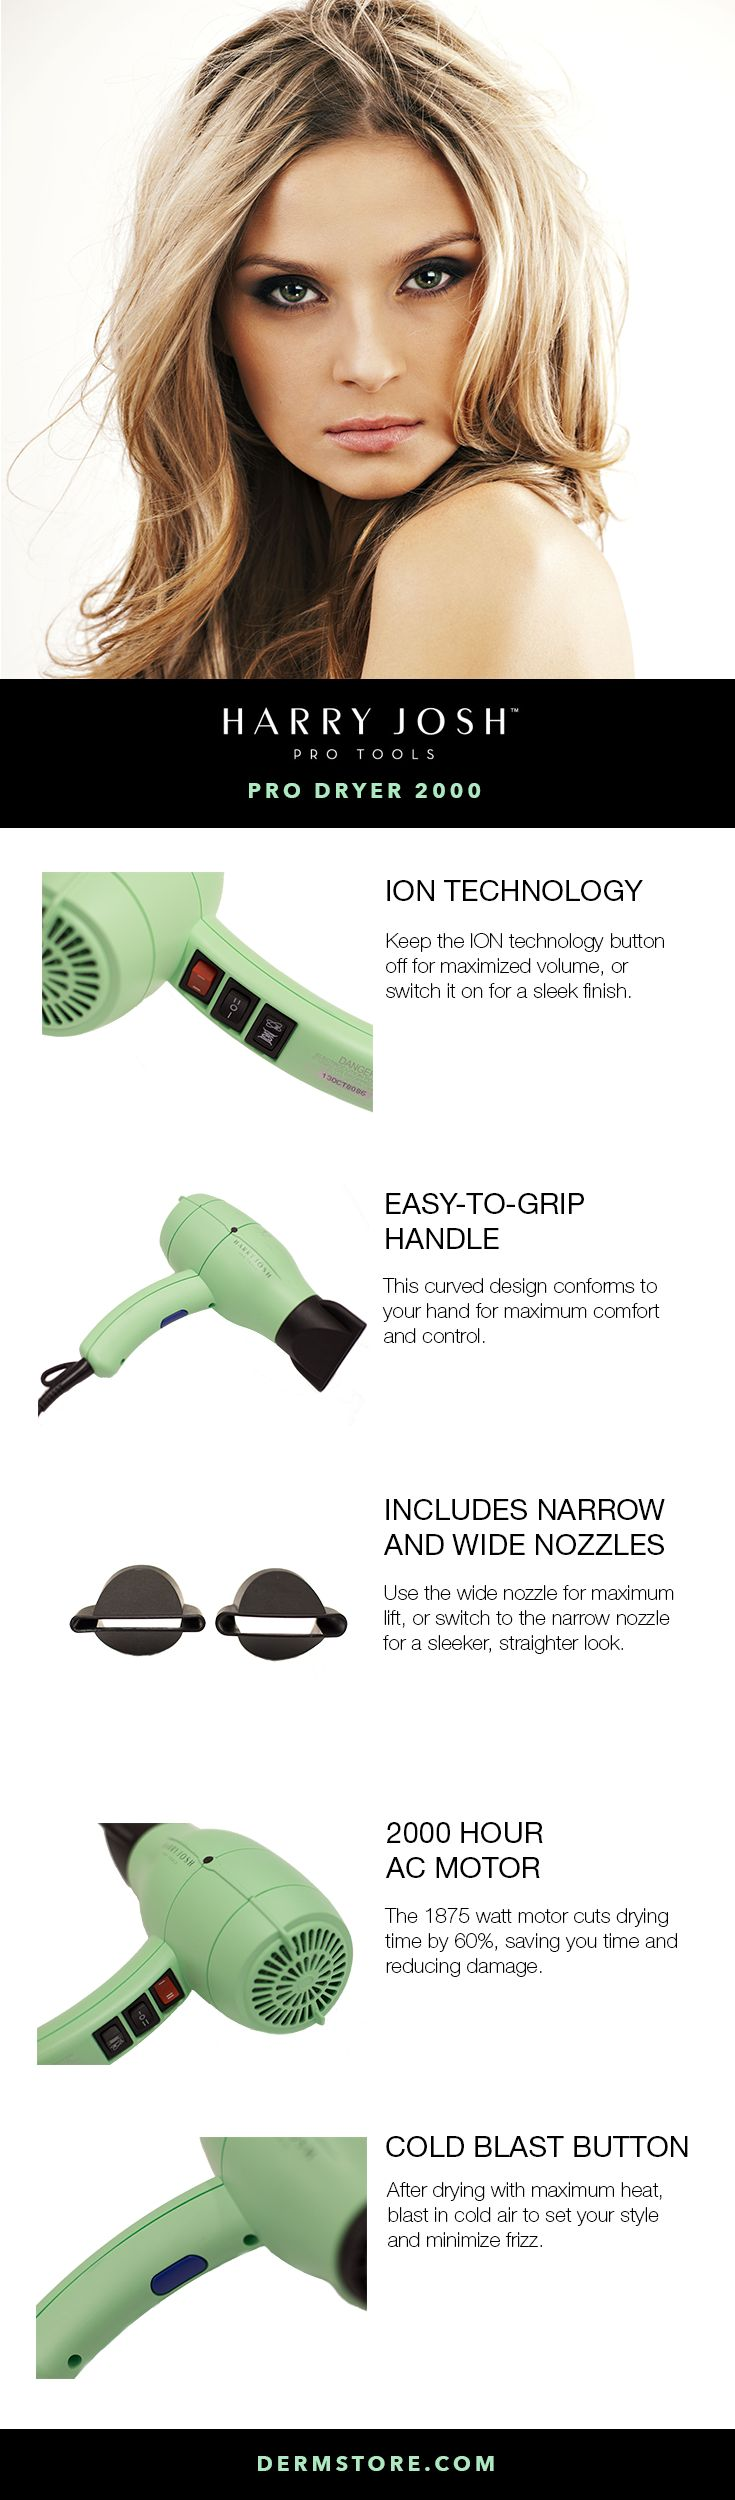 When it comes to the best of the best in hair dryers, the Harry Josh dryer is a class above all others, and this is why!